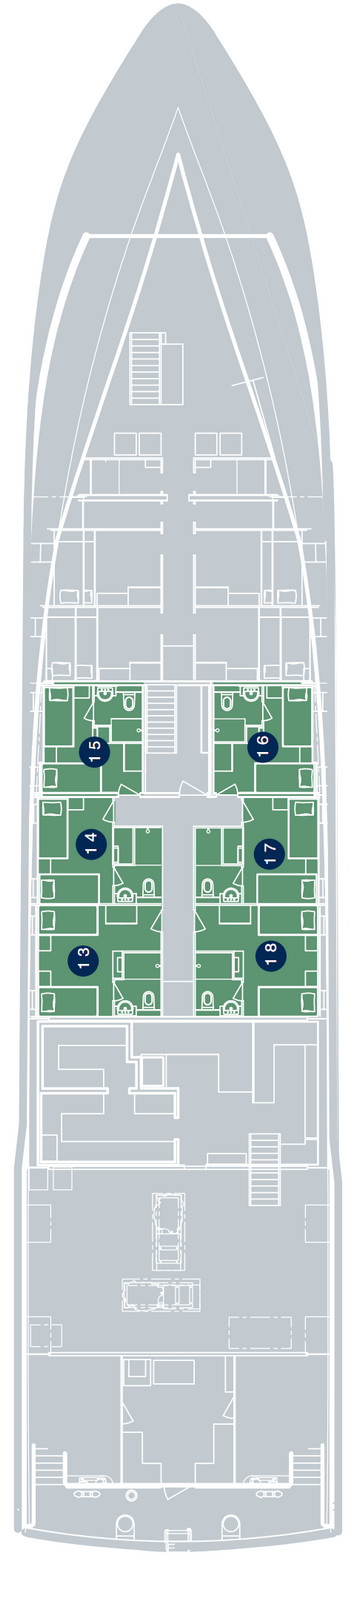 True North Lower Deck layout